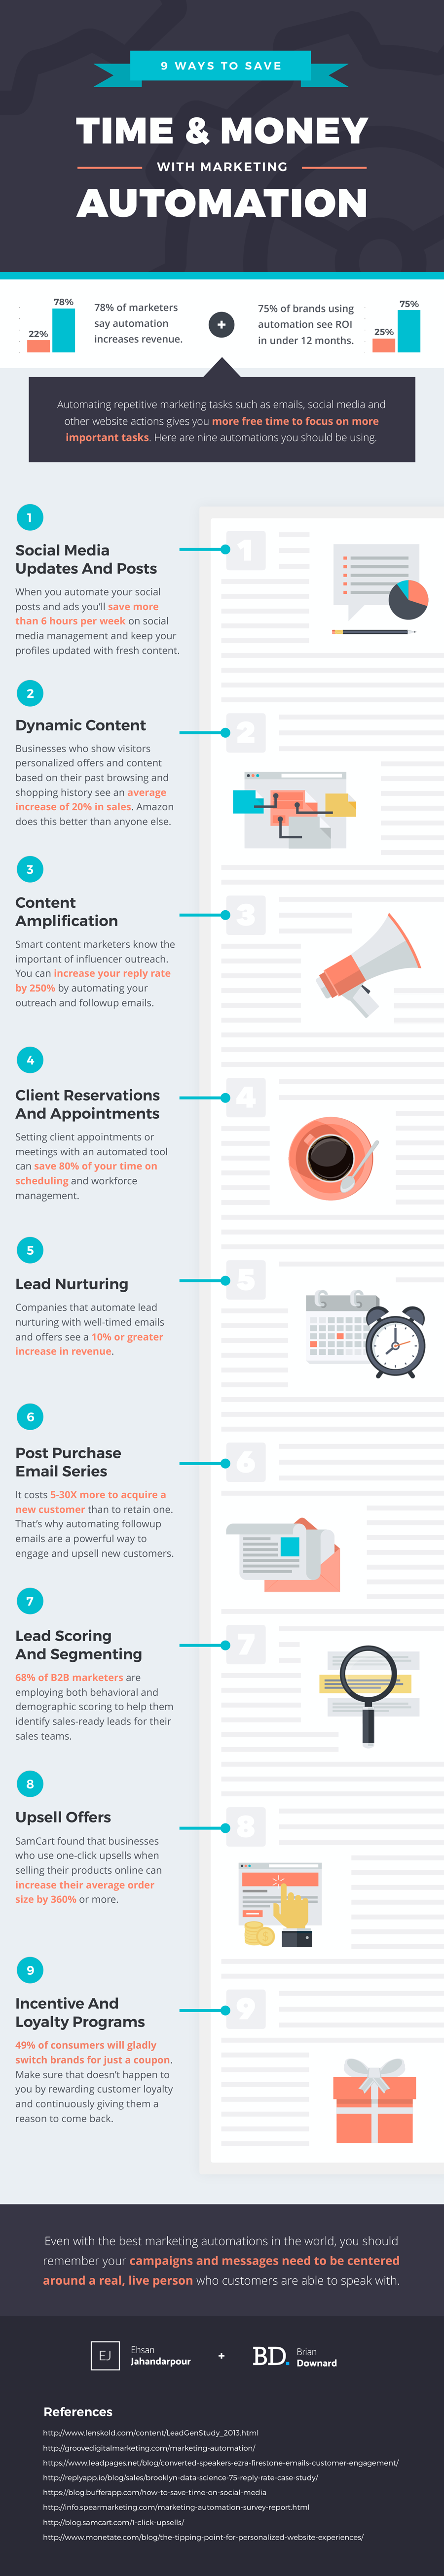 9 Ways to Save Time and Money With Marketing Automation - #Infographic